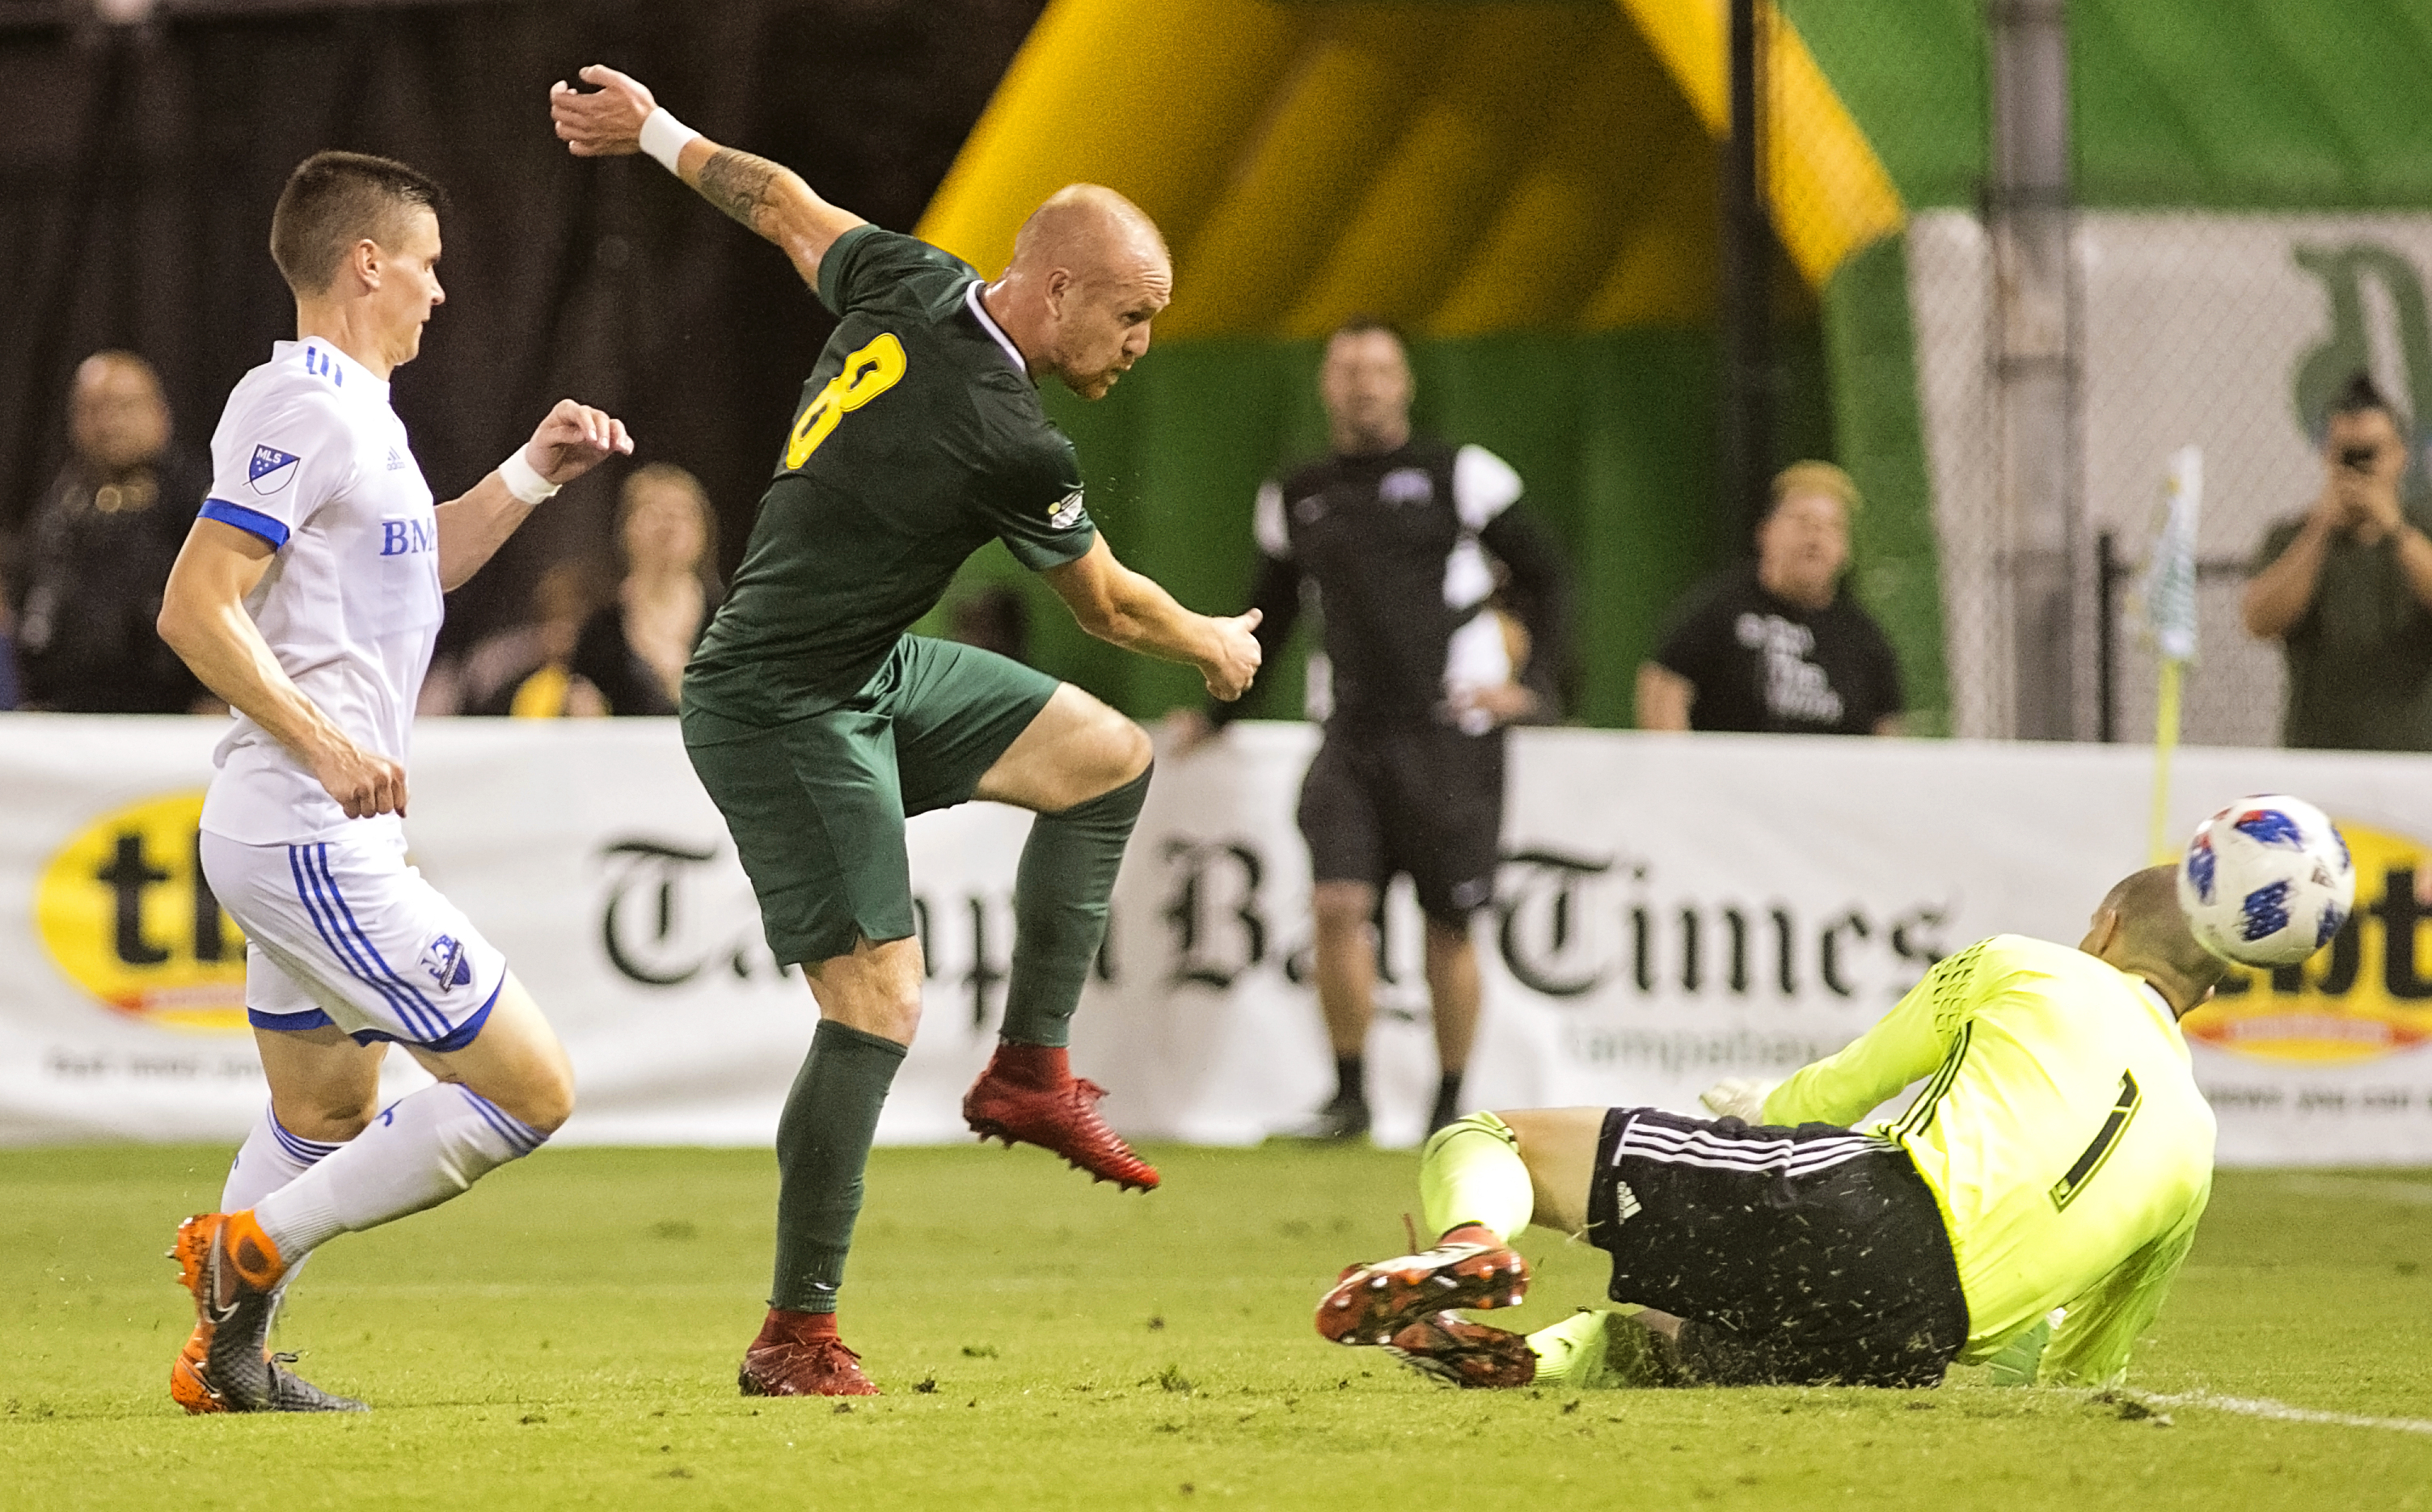 Jochen Graf goes airborne to score the first Rowdies goal./CARMEN MANDATO